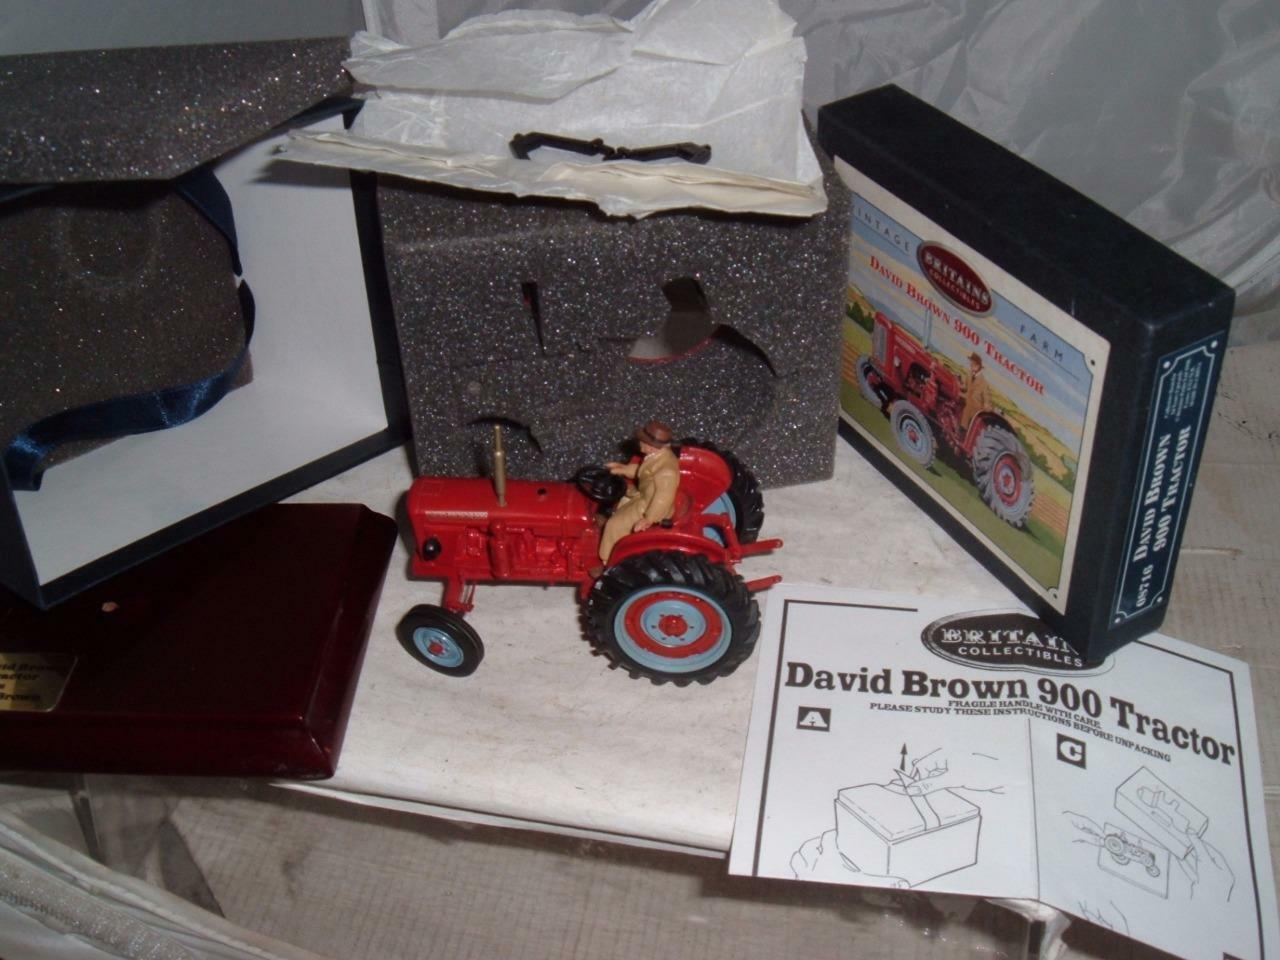 BRITAINS DAVID BROWN 900 TRACTOR COMPLETE WITH ITS DRIVER BOX & PAPERWORK